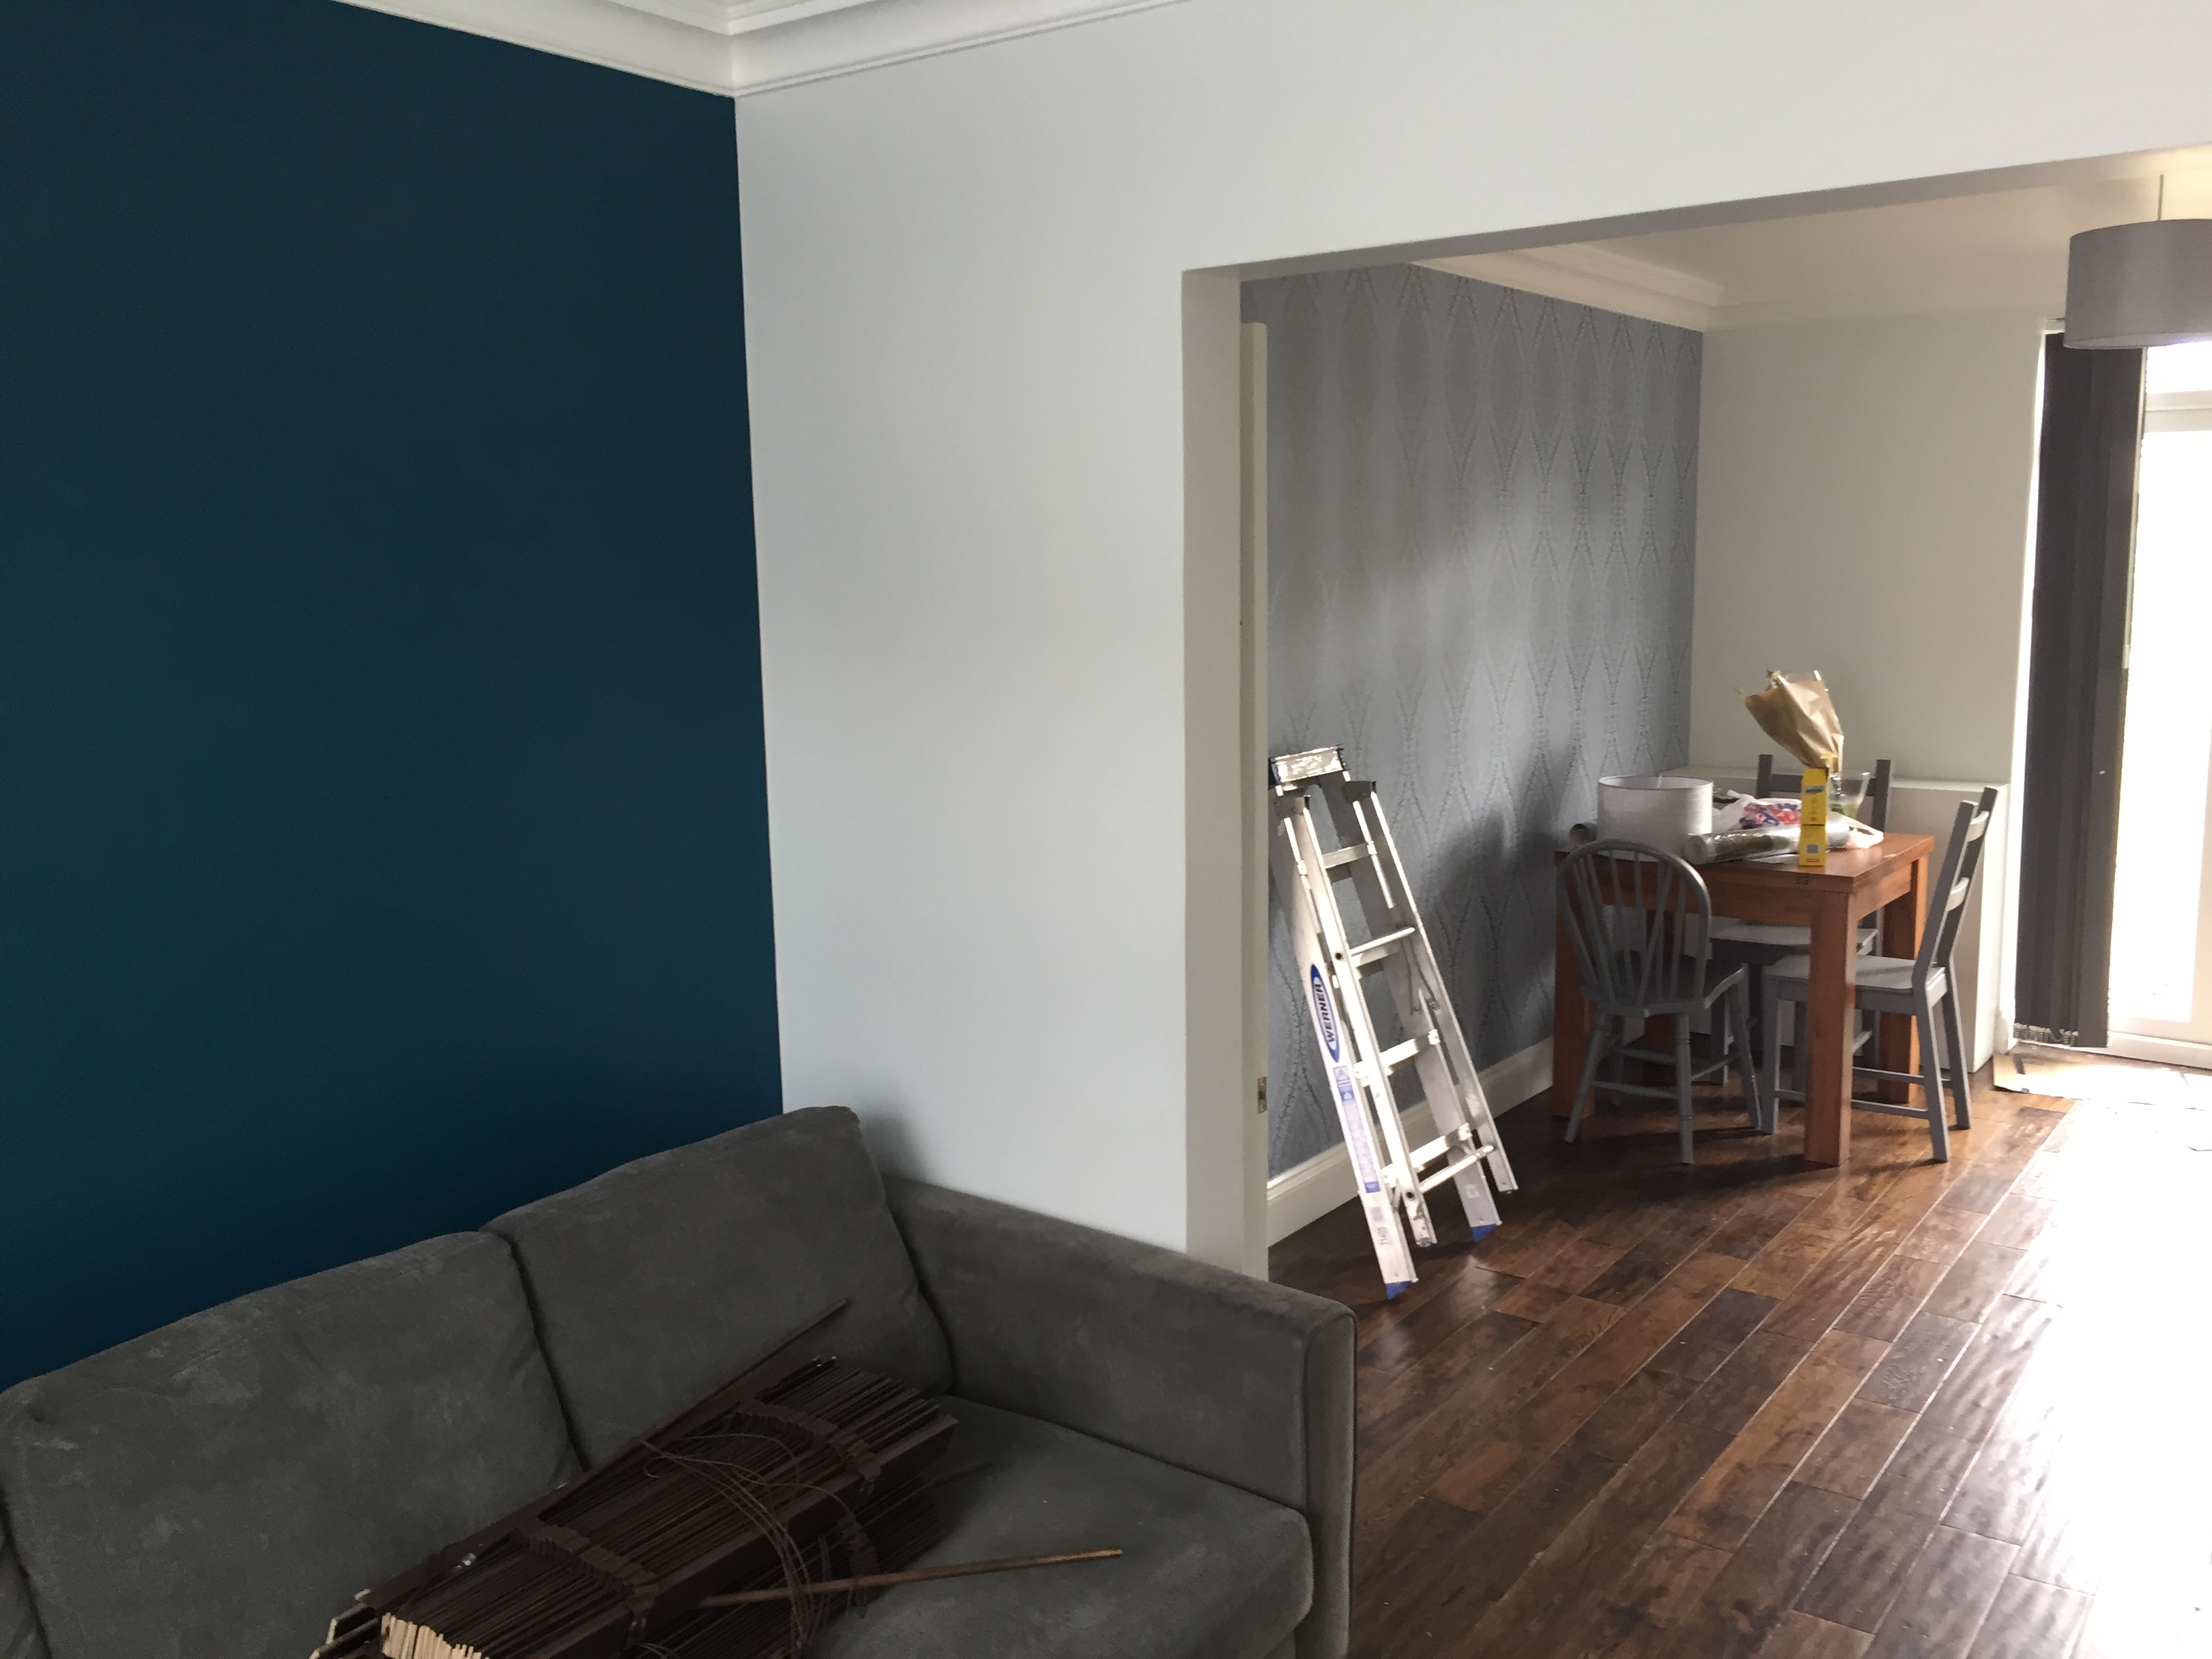 Painters in East London